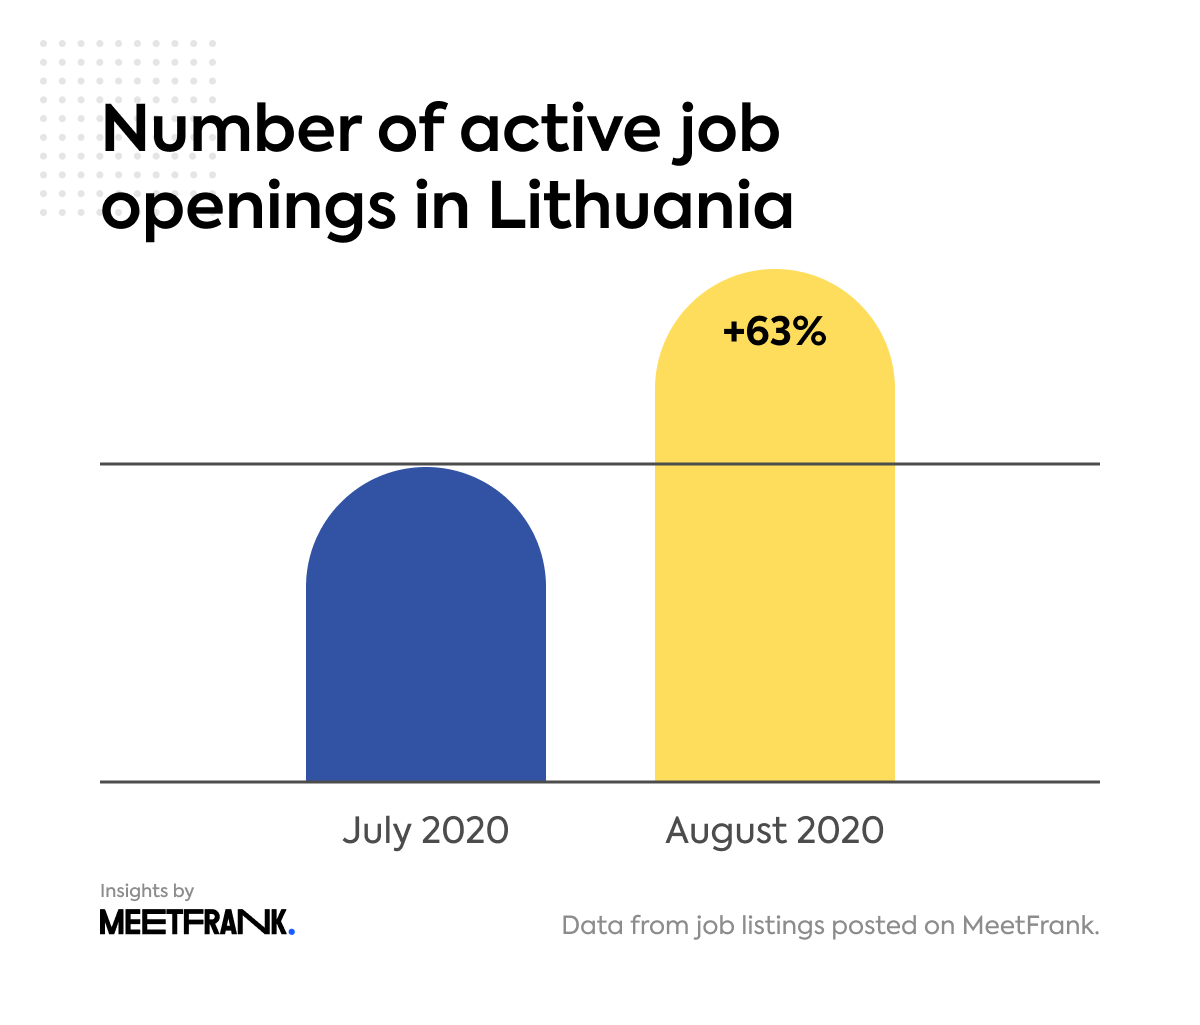 job openings in Lithuania in August